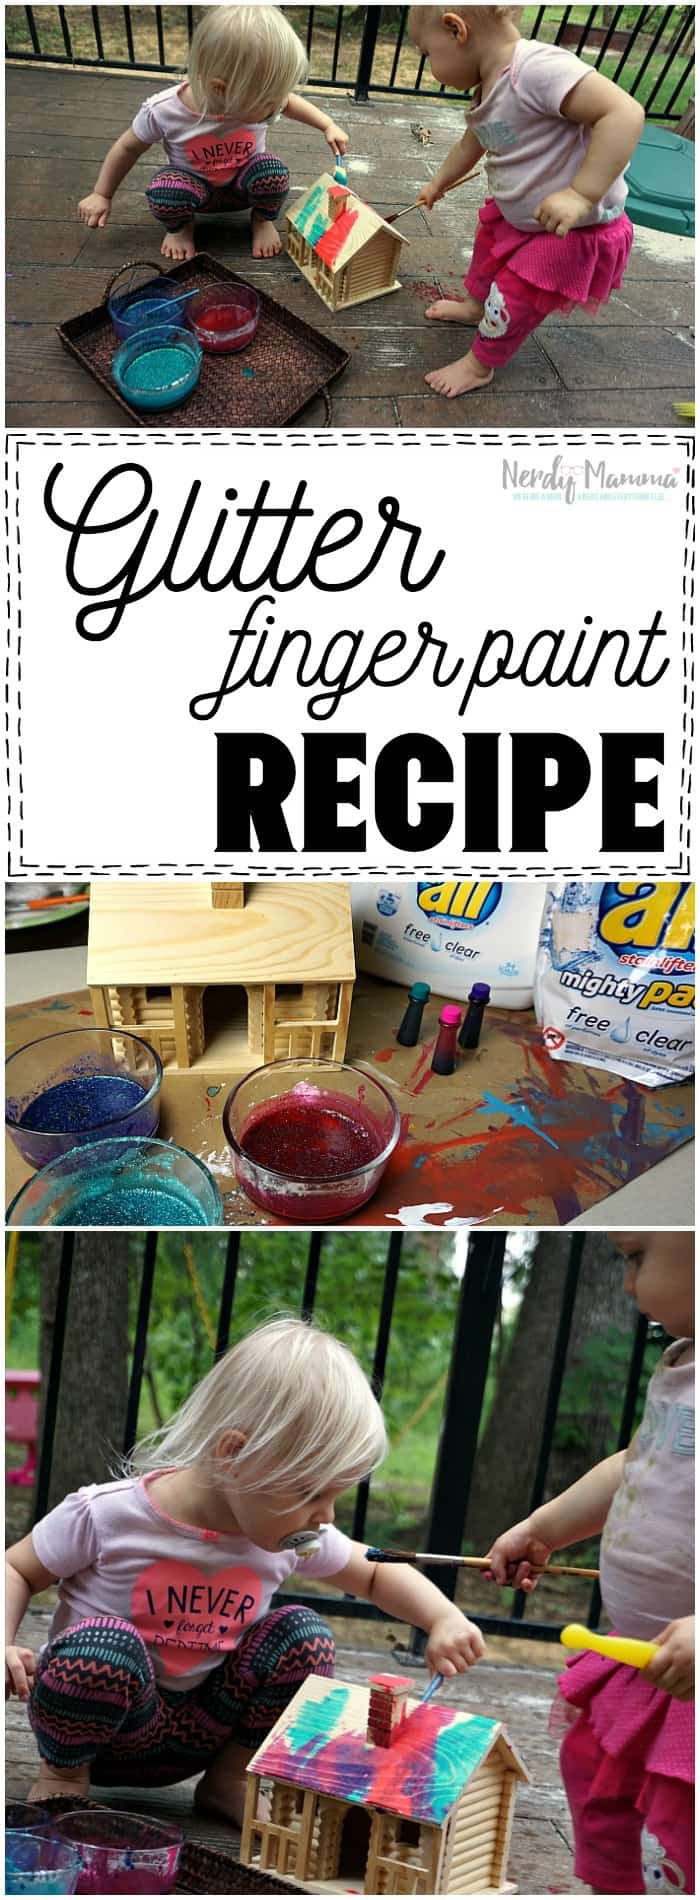 Oh, I love how simple this glitter finger paint recipe is! So beautiful!